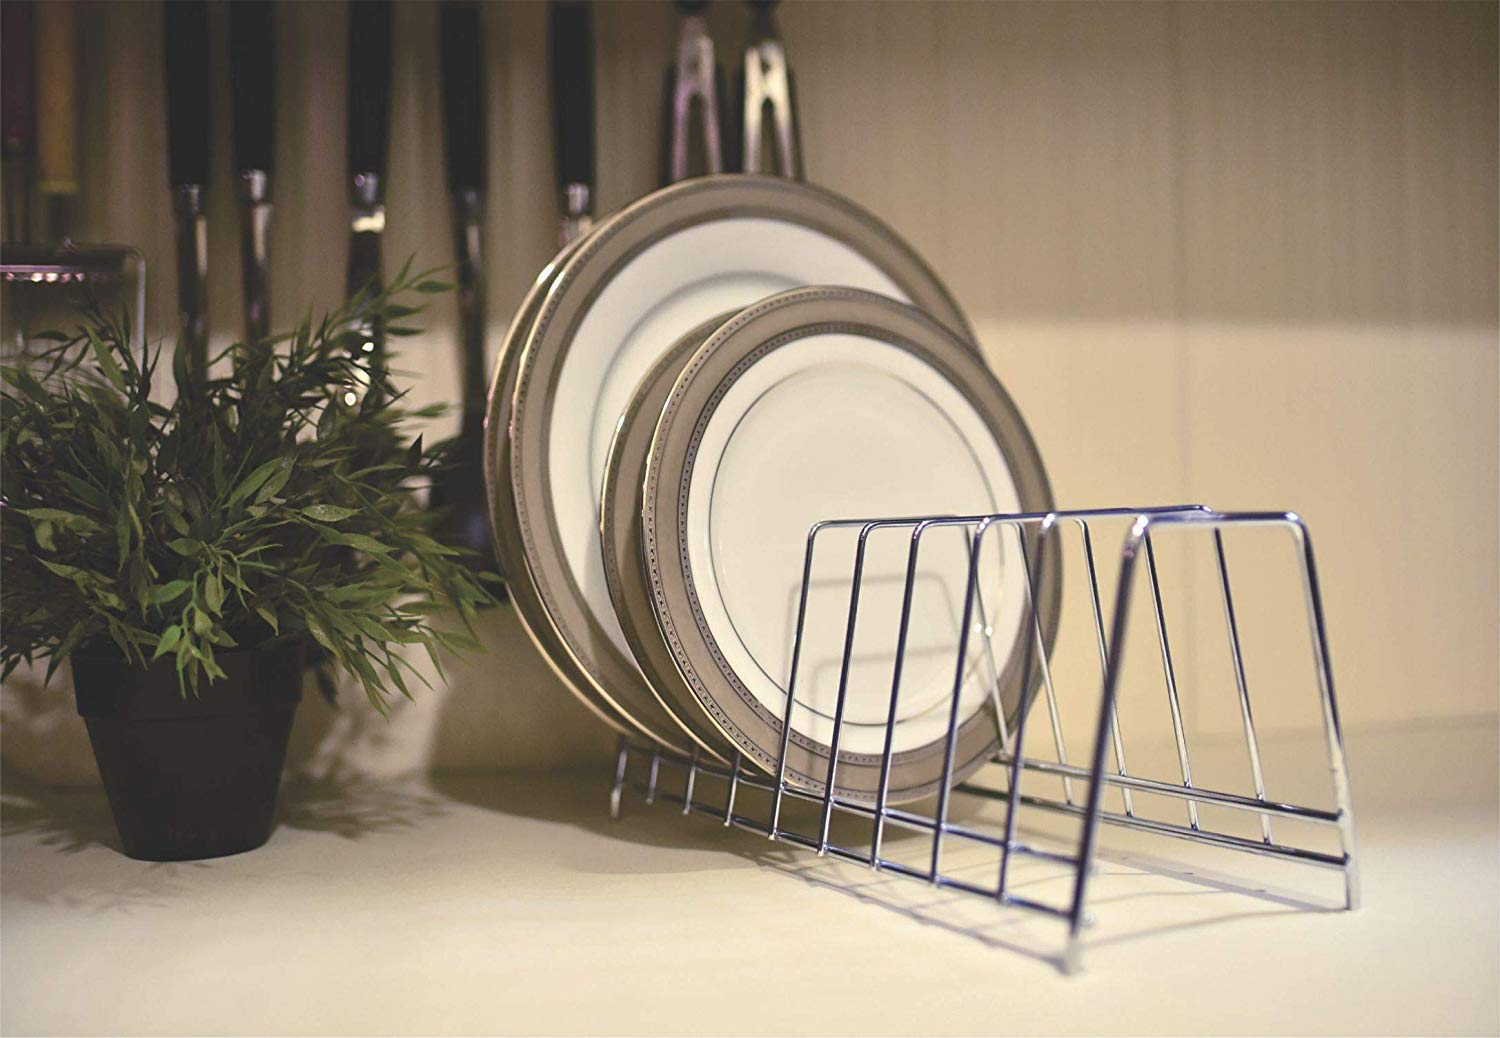 Levon Stainless Steel Plate Rack | Dish Rack | Plate Stand | Dish Stand | Lid Holder Utensil Rack for Kitchen - 6 Sections| with Anti-Rust Nano Coating product image